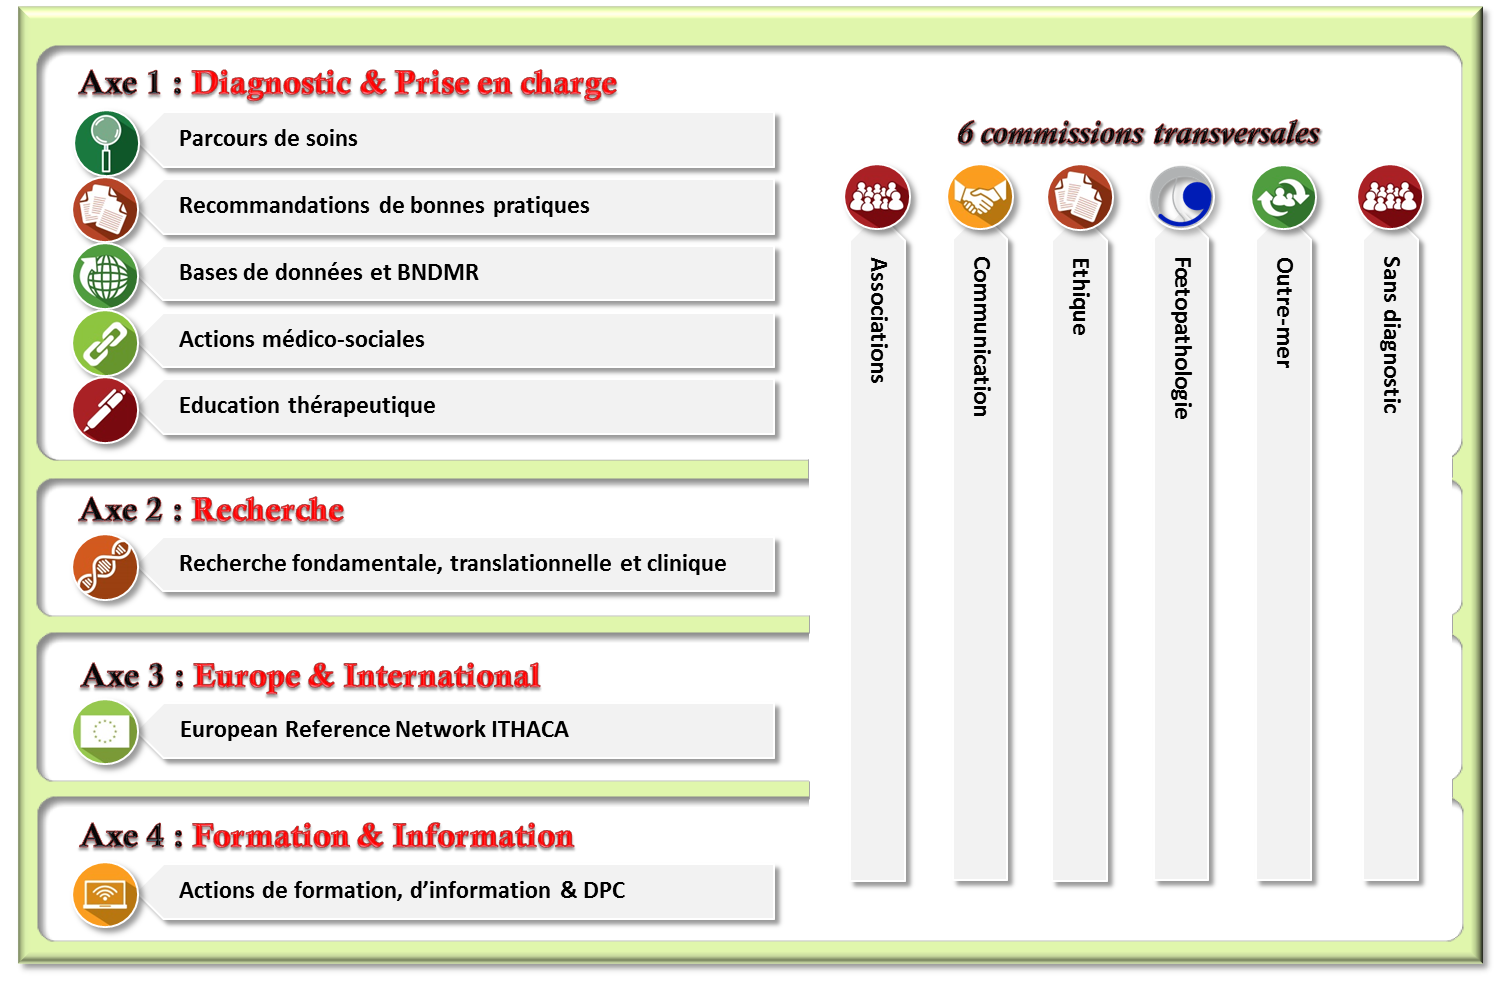 AxeS et commissions transversales AnDDI-Rares